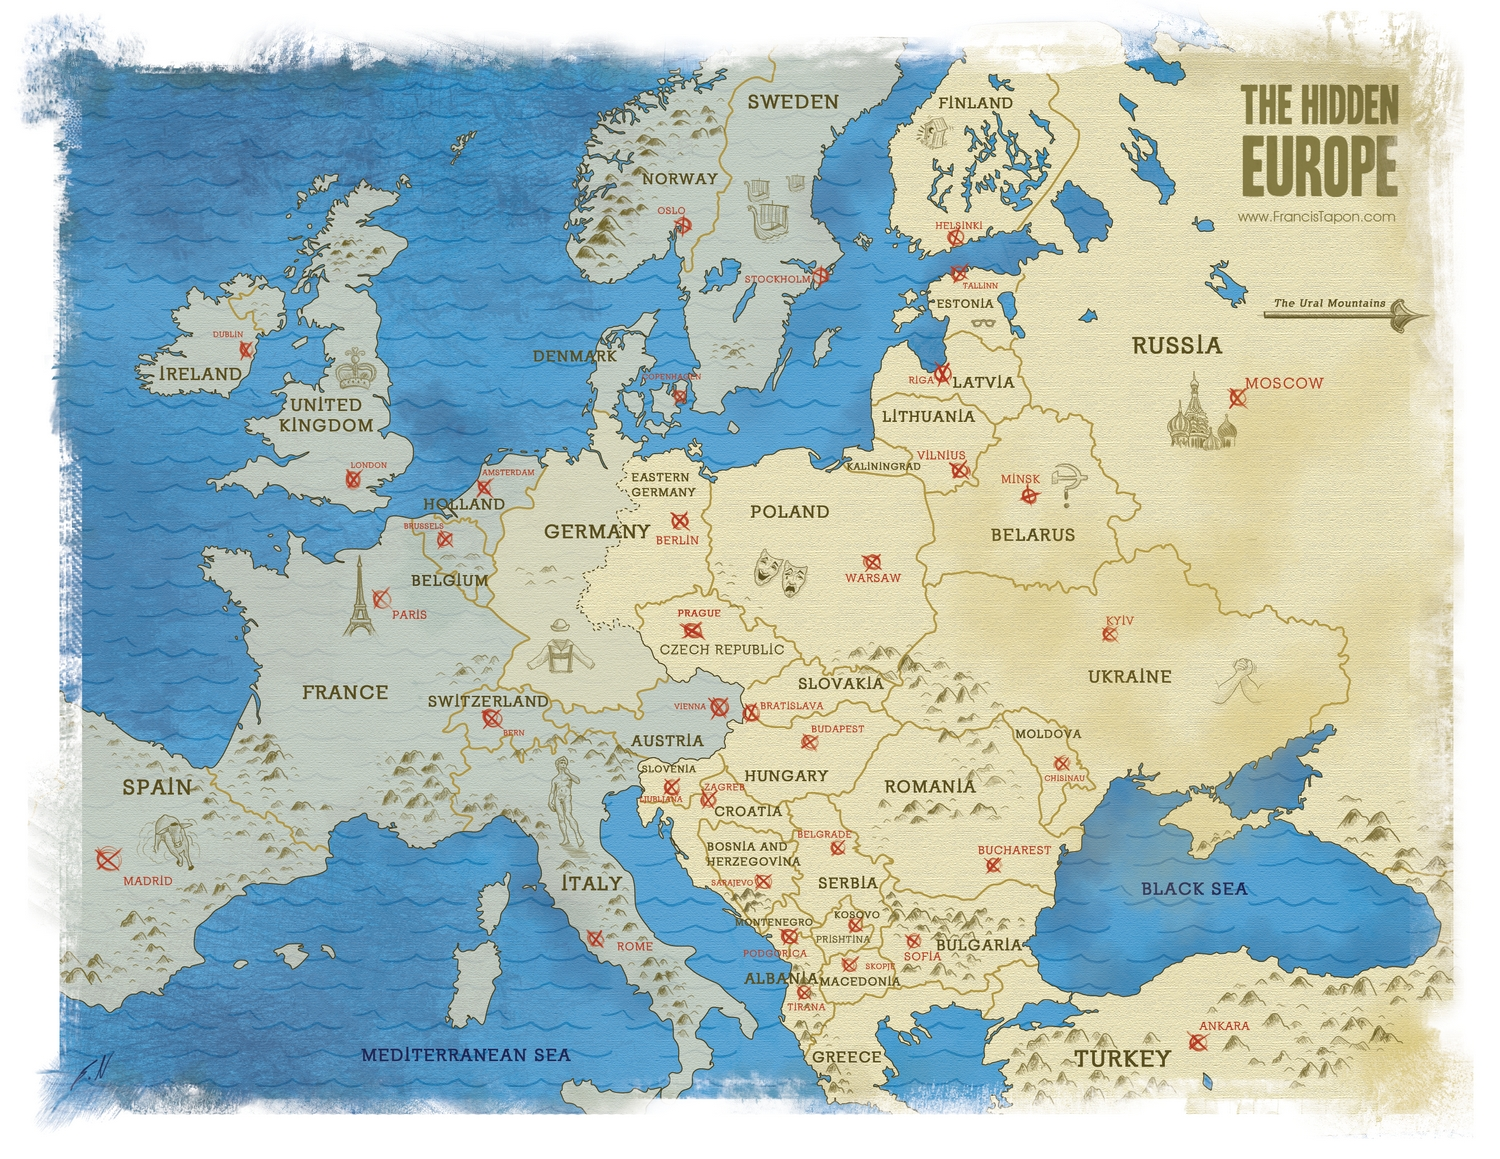 Where is eastern europe and what countries are in it the hidden eastern europe map from francis tapons book the hidden europe gumiabroncs